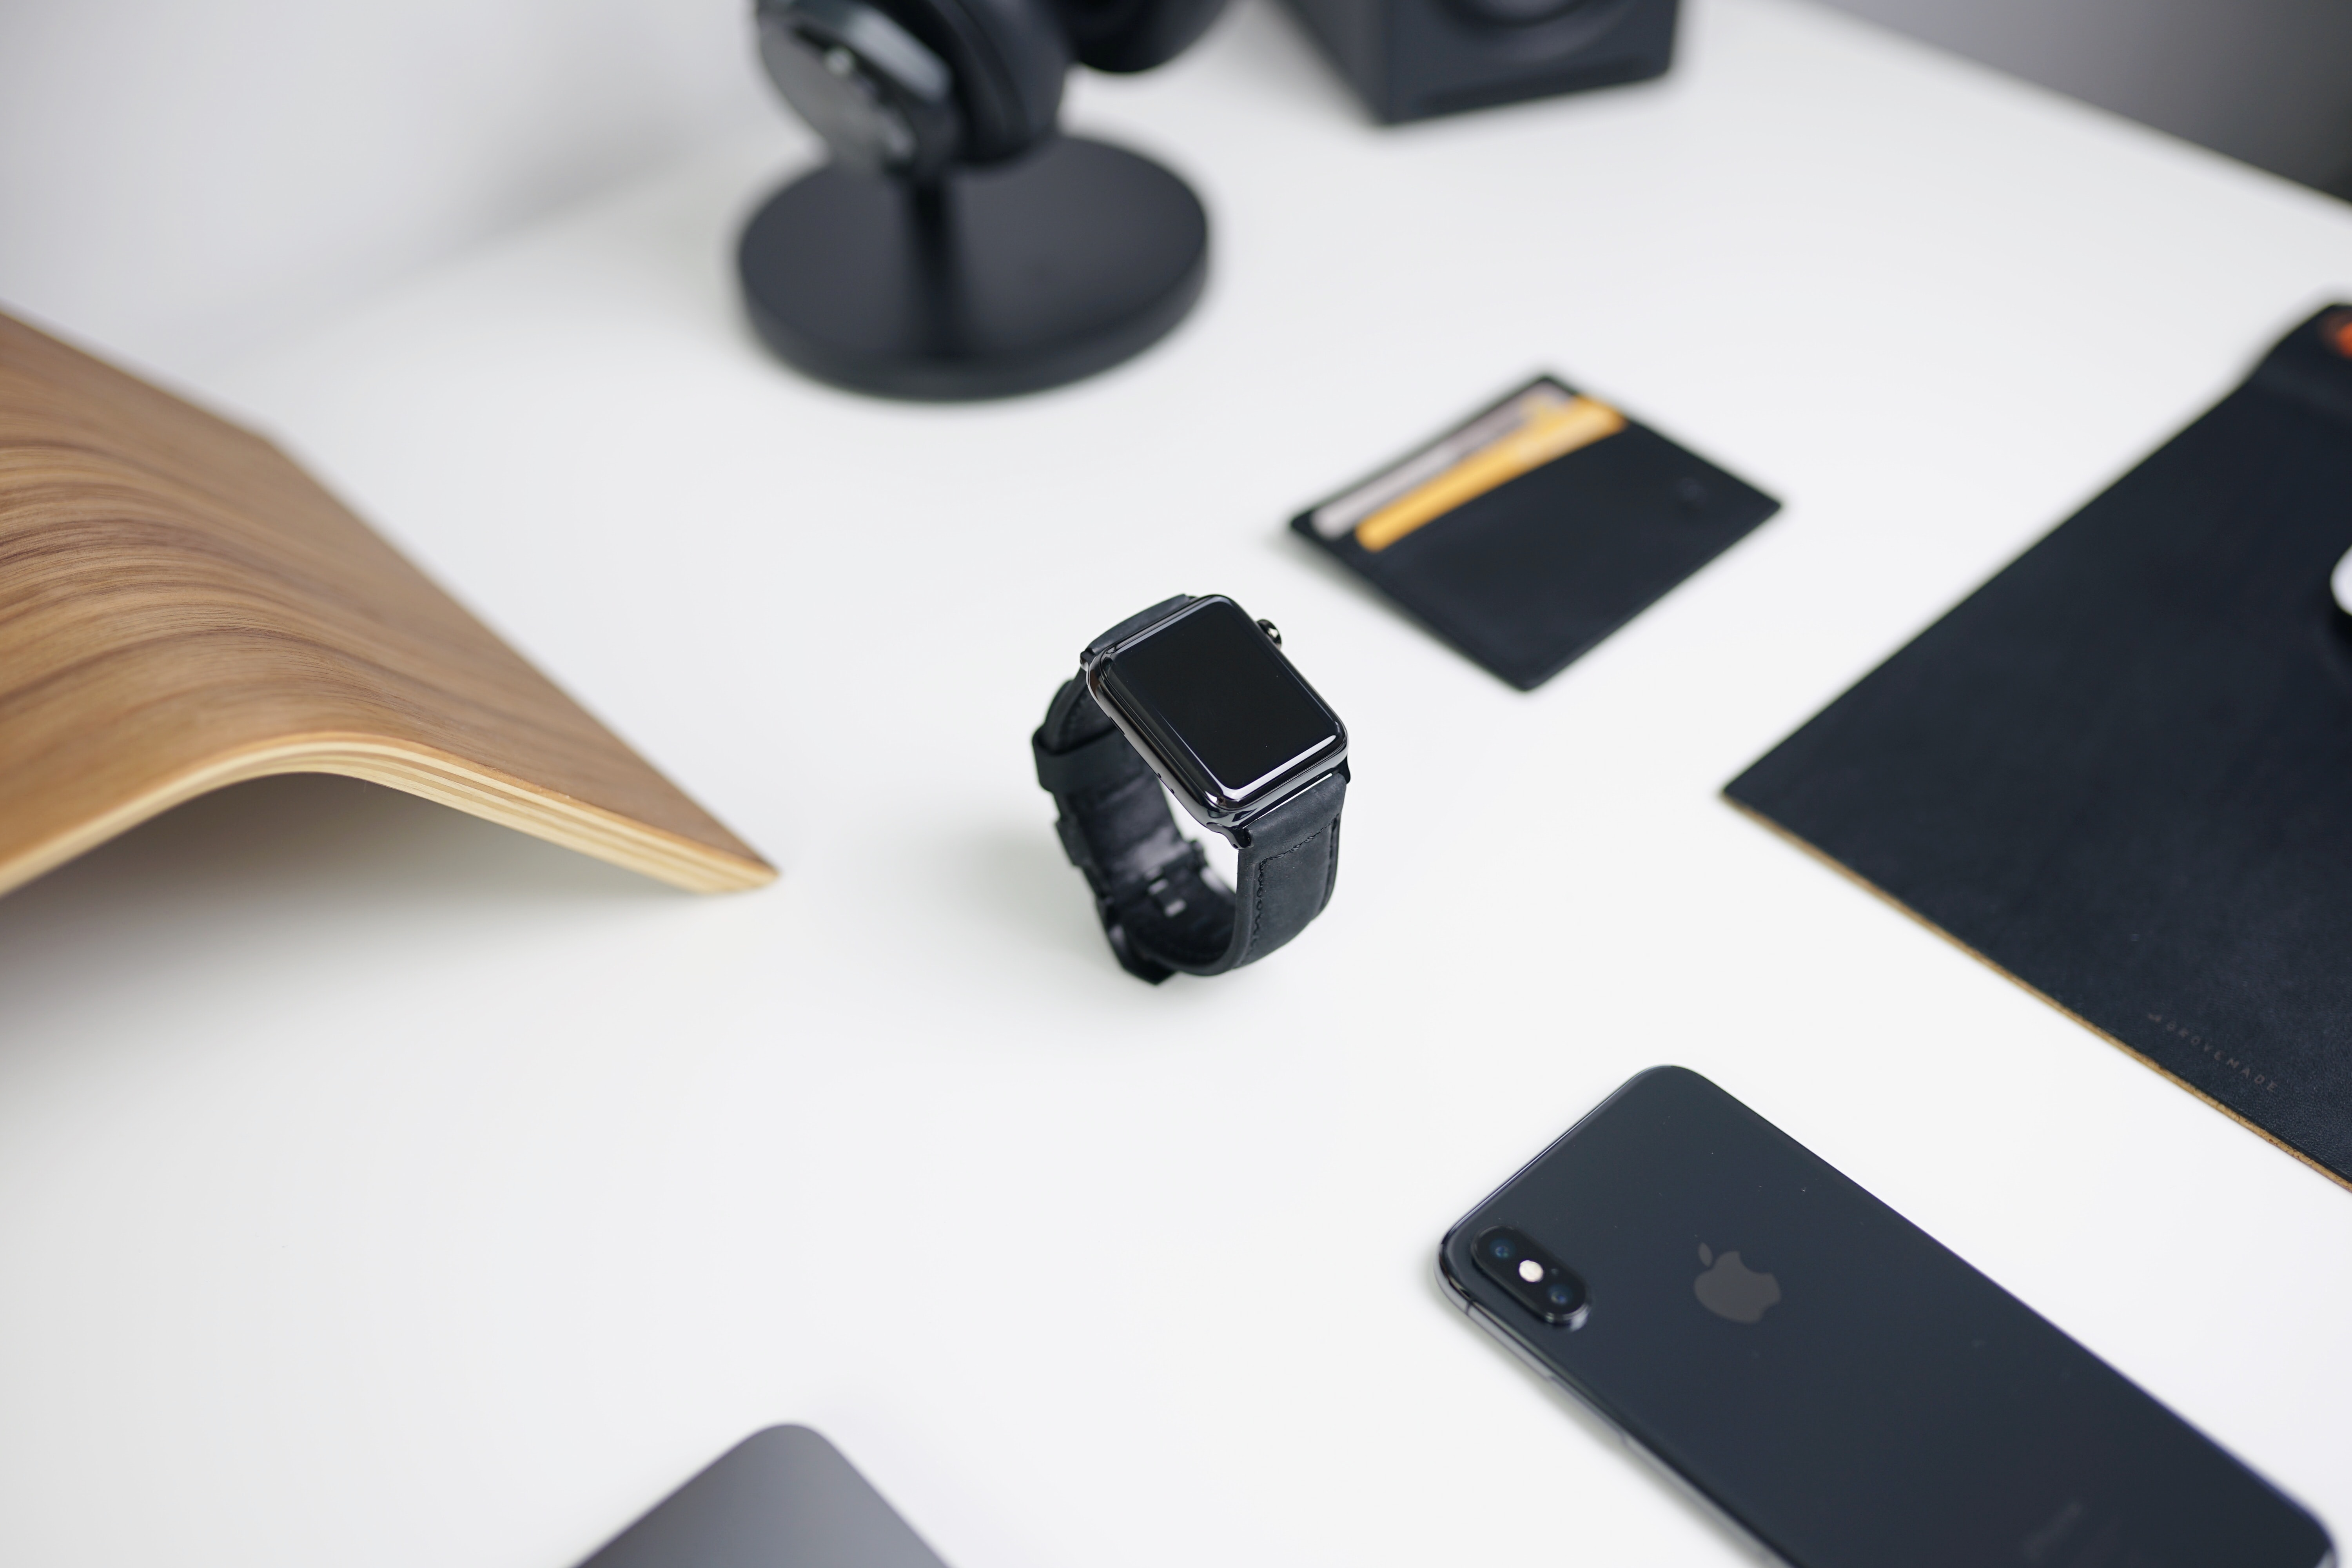 black smartwatch on table near iPhone